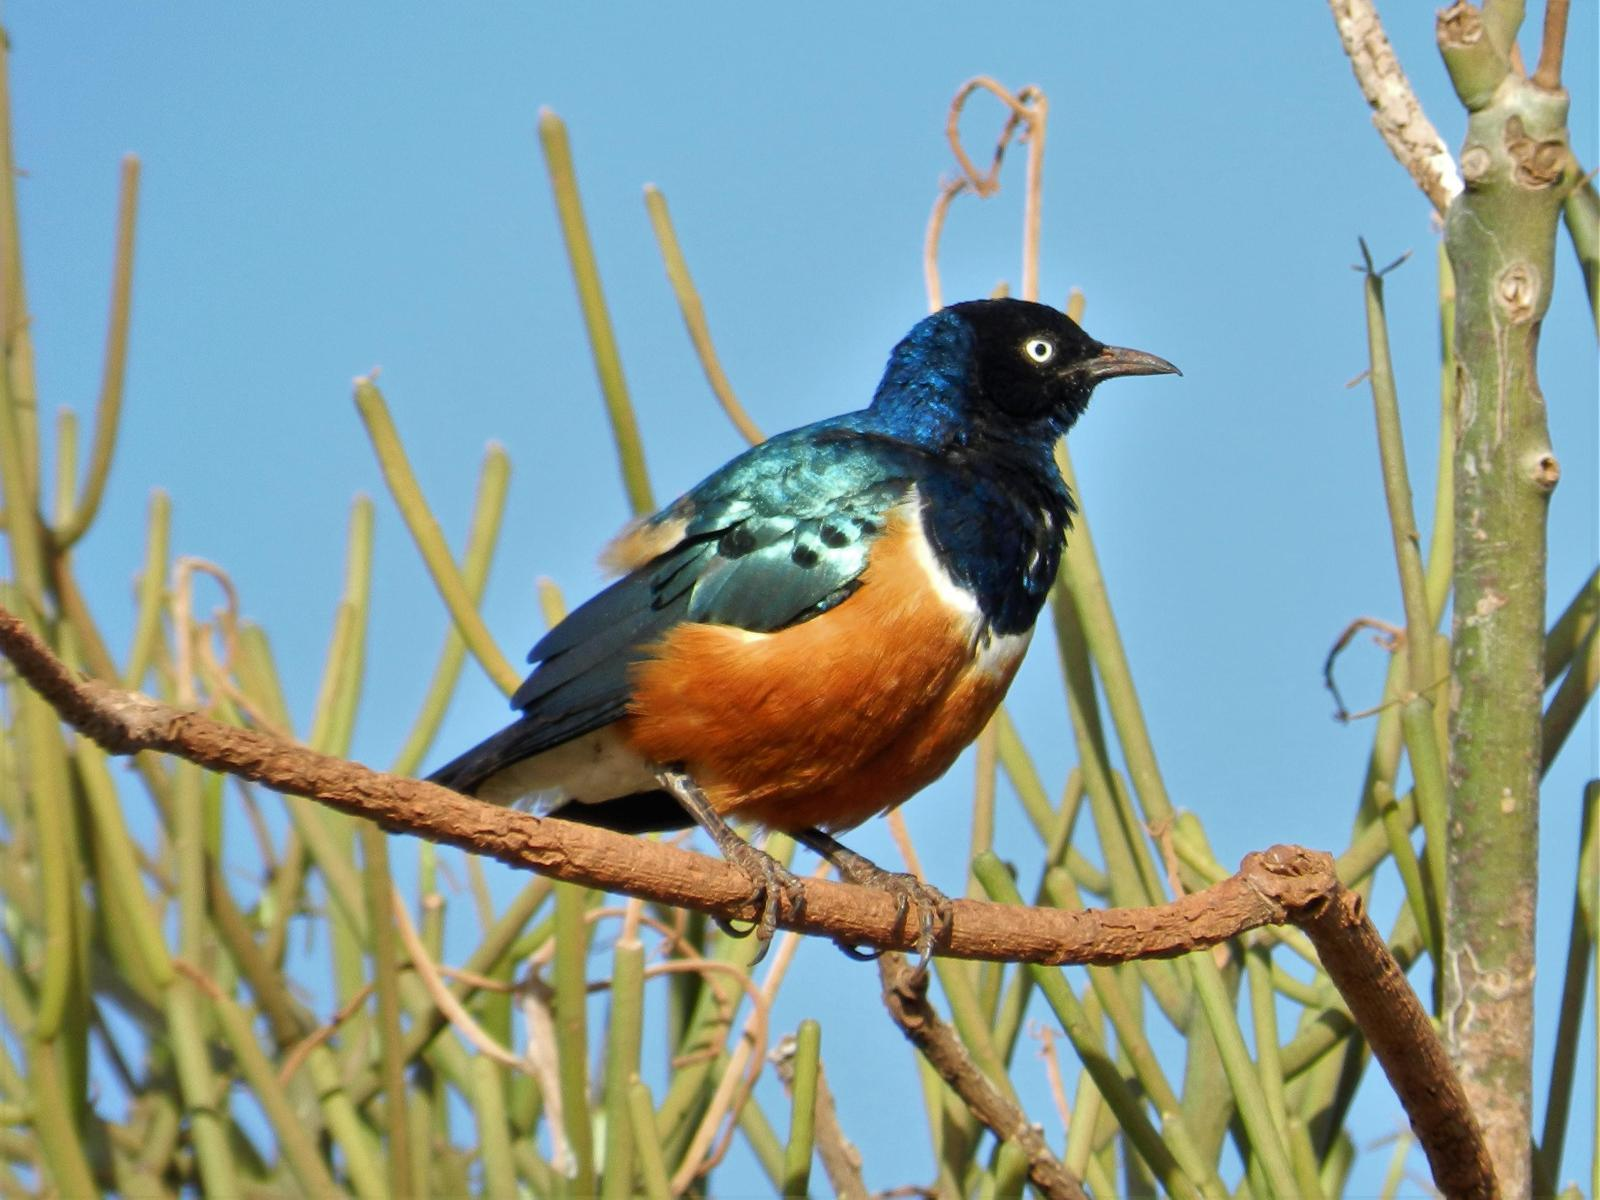 Superb Starling Photo by Richard Jeffers